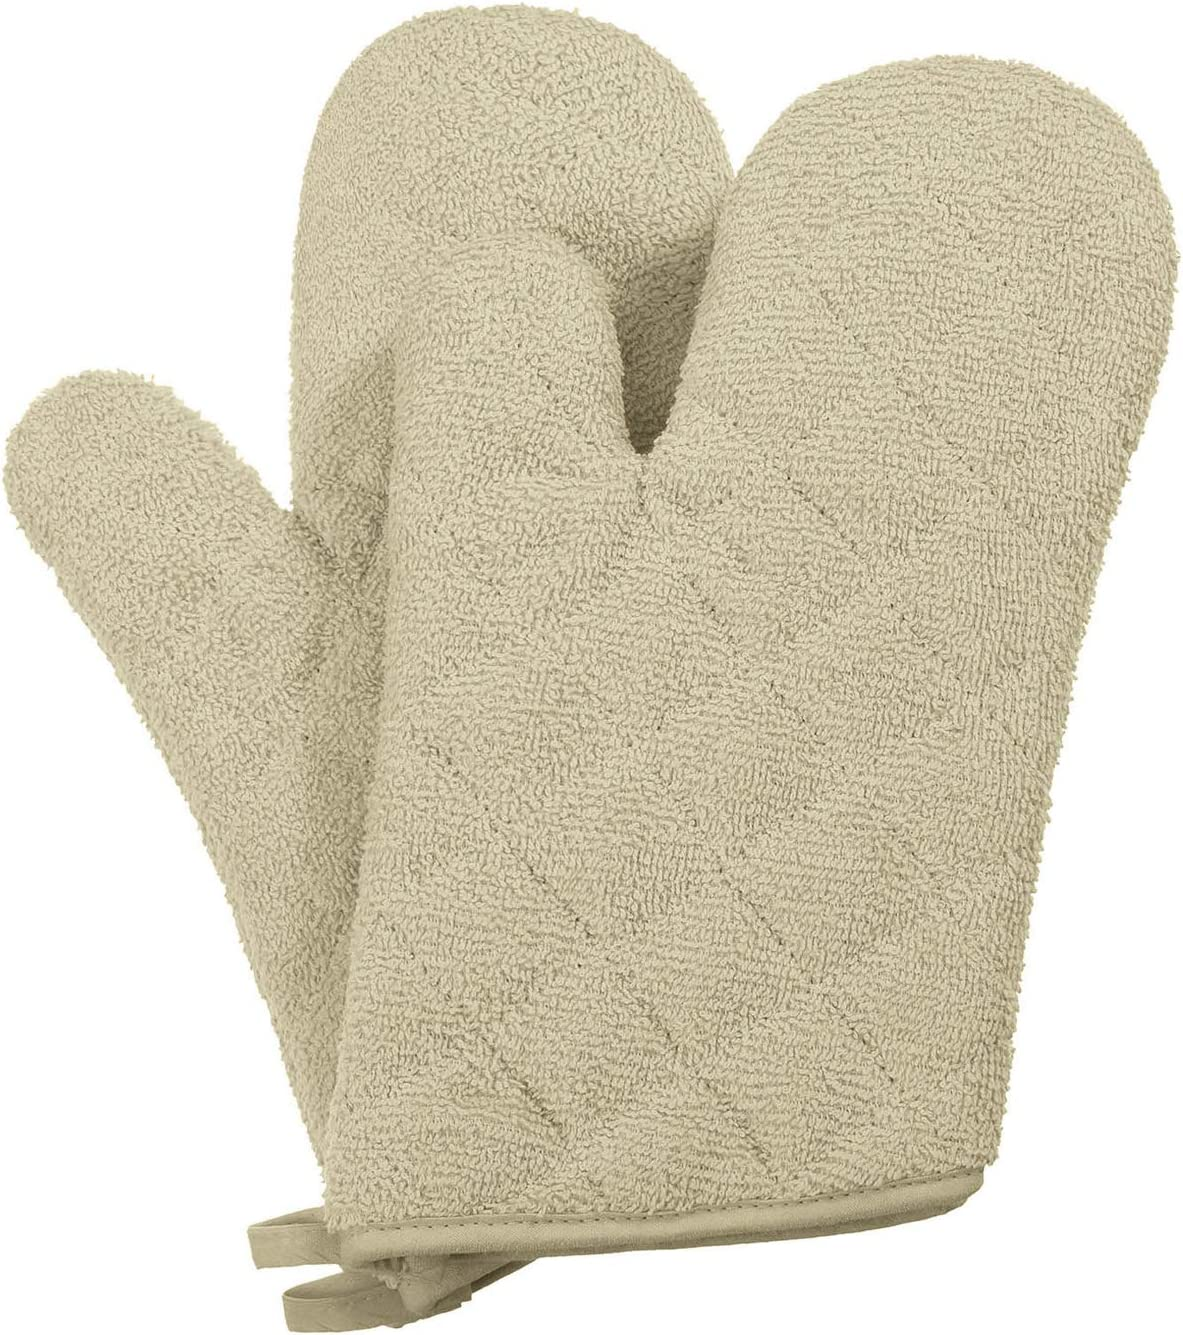 VEEYOO 100% Cotton Oven Mitts, Everyday Kitchen Heat Resistant Oven Mitt Set, Machine Washable Terry Oven Mitts Baking Gloves (Khaki 7.5x12 Inches, Set of 2)